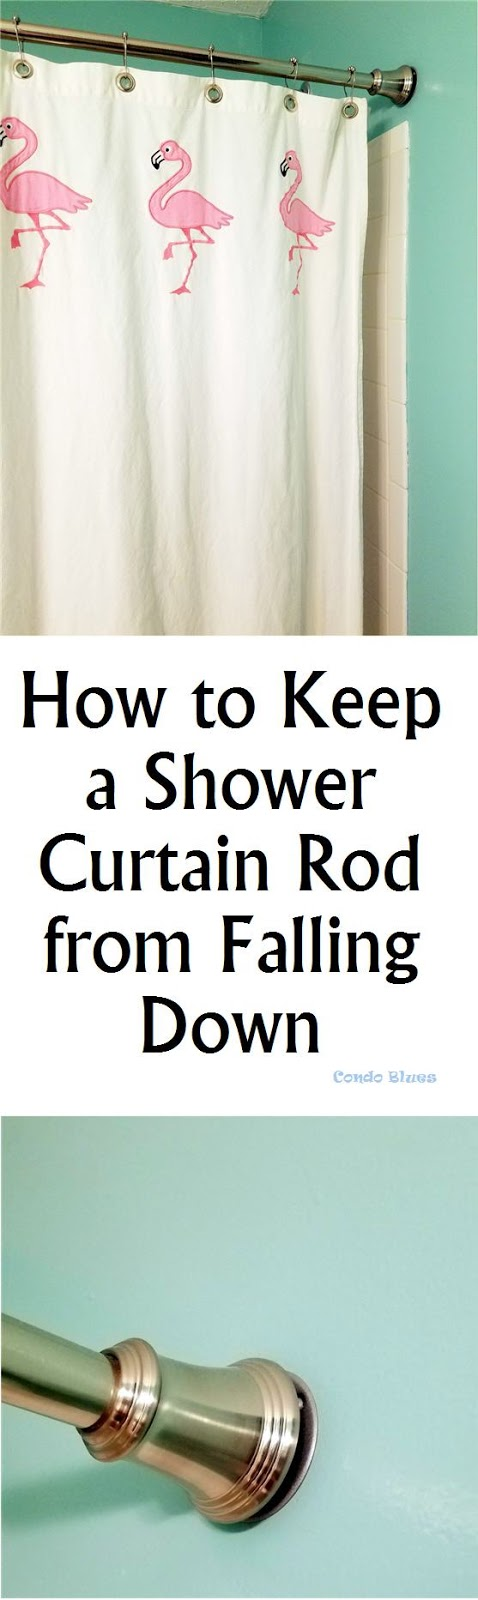 how to keep a bathroom shower curtain rod from falling